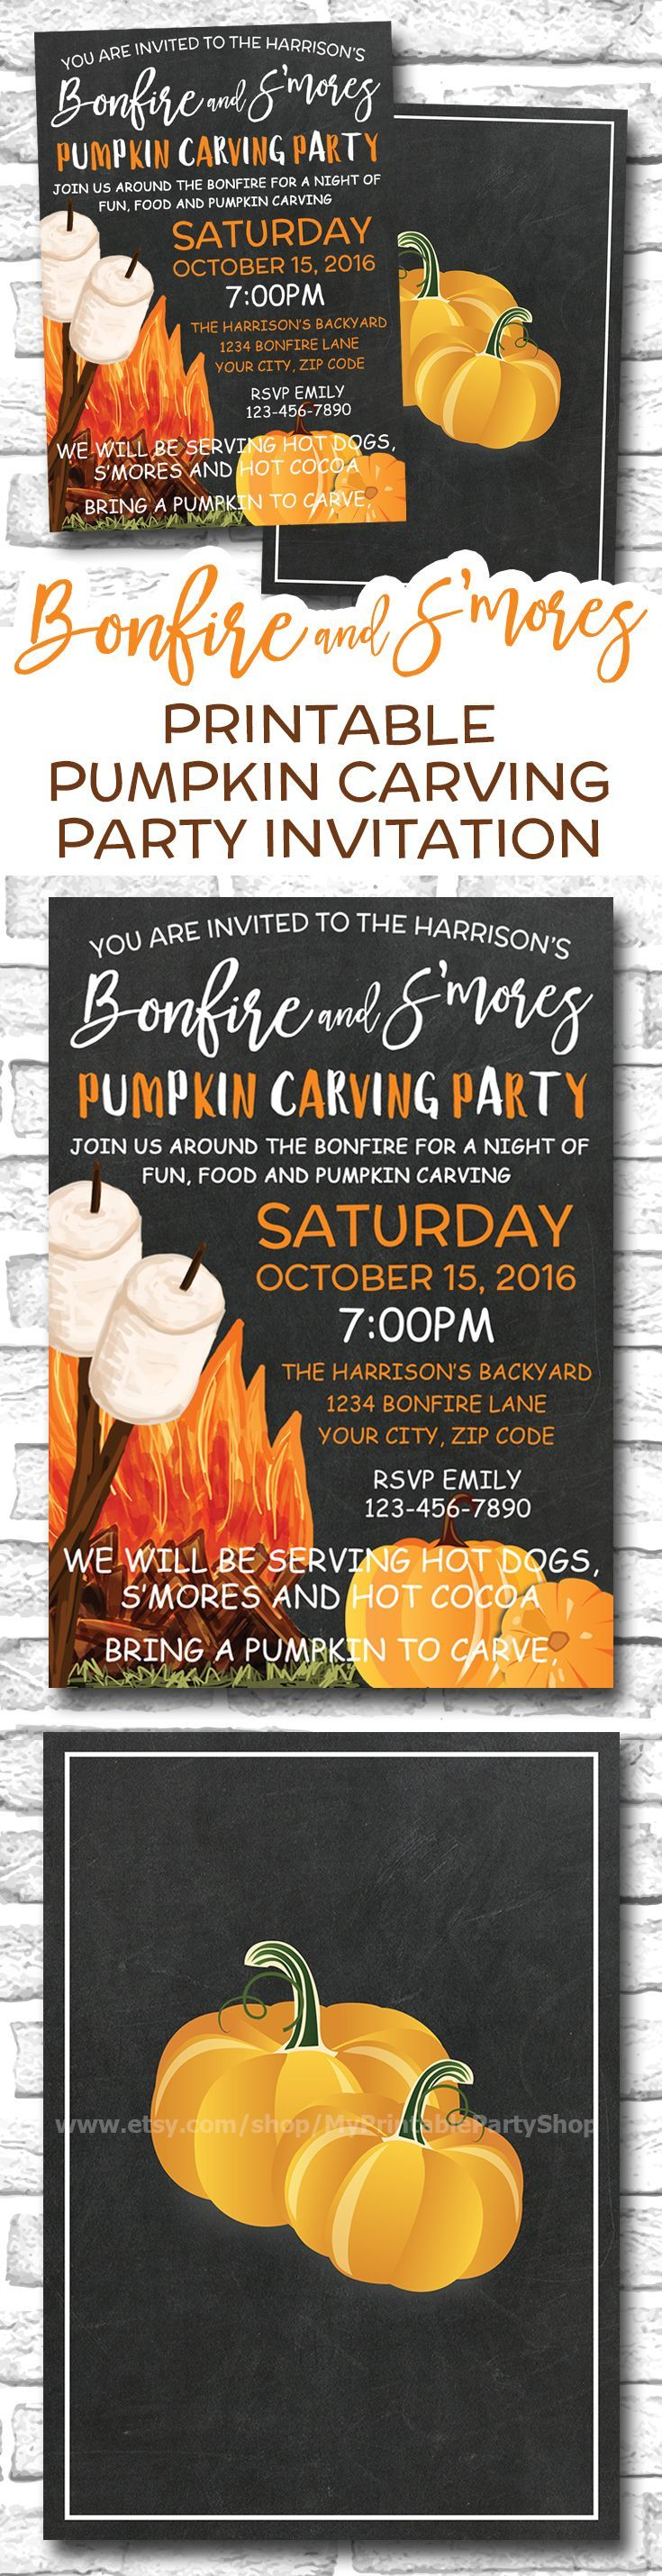 https://www.etsy.com/ca/listing/465912104/pumpkin-carving-party-invitation-smores Printable Bonfire And Smores Pumpkin Carving Party Invitation